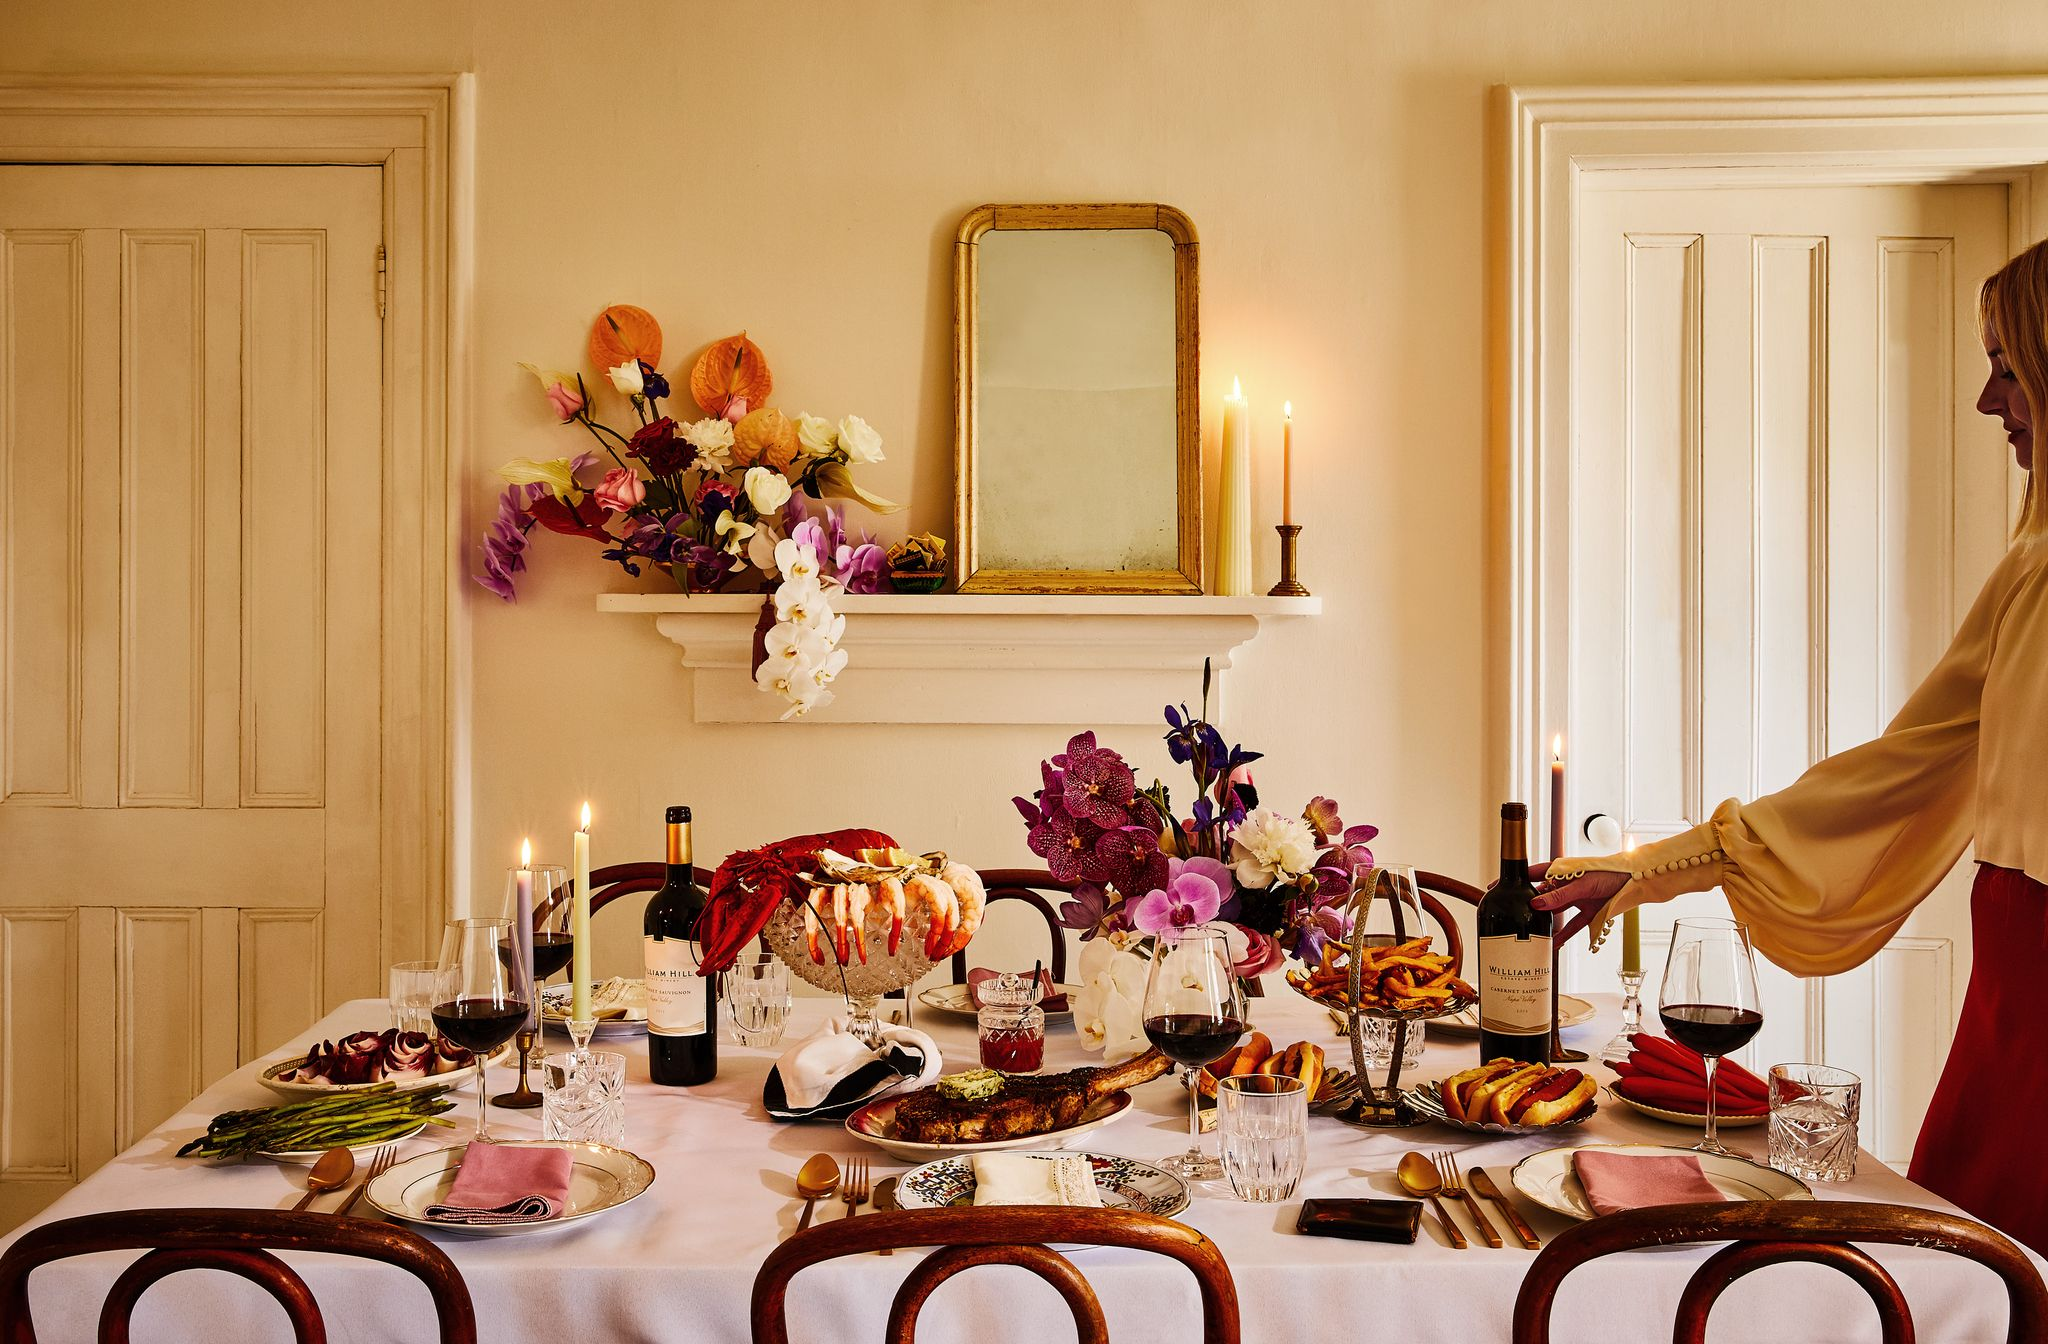 How to Plan a Casual Chic Dinner Party